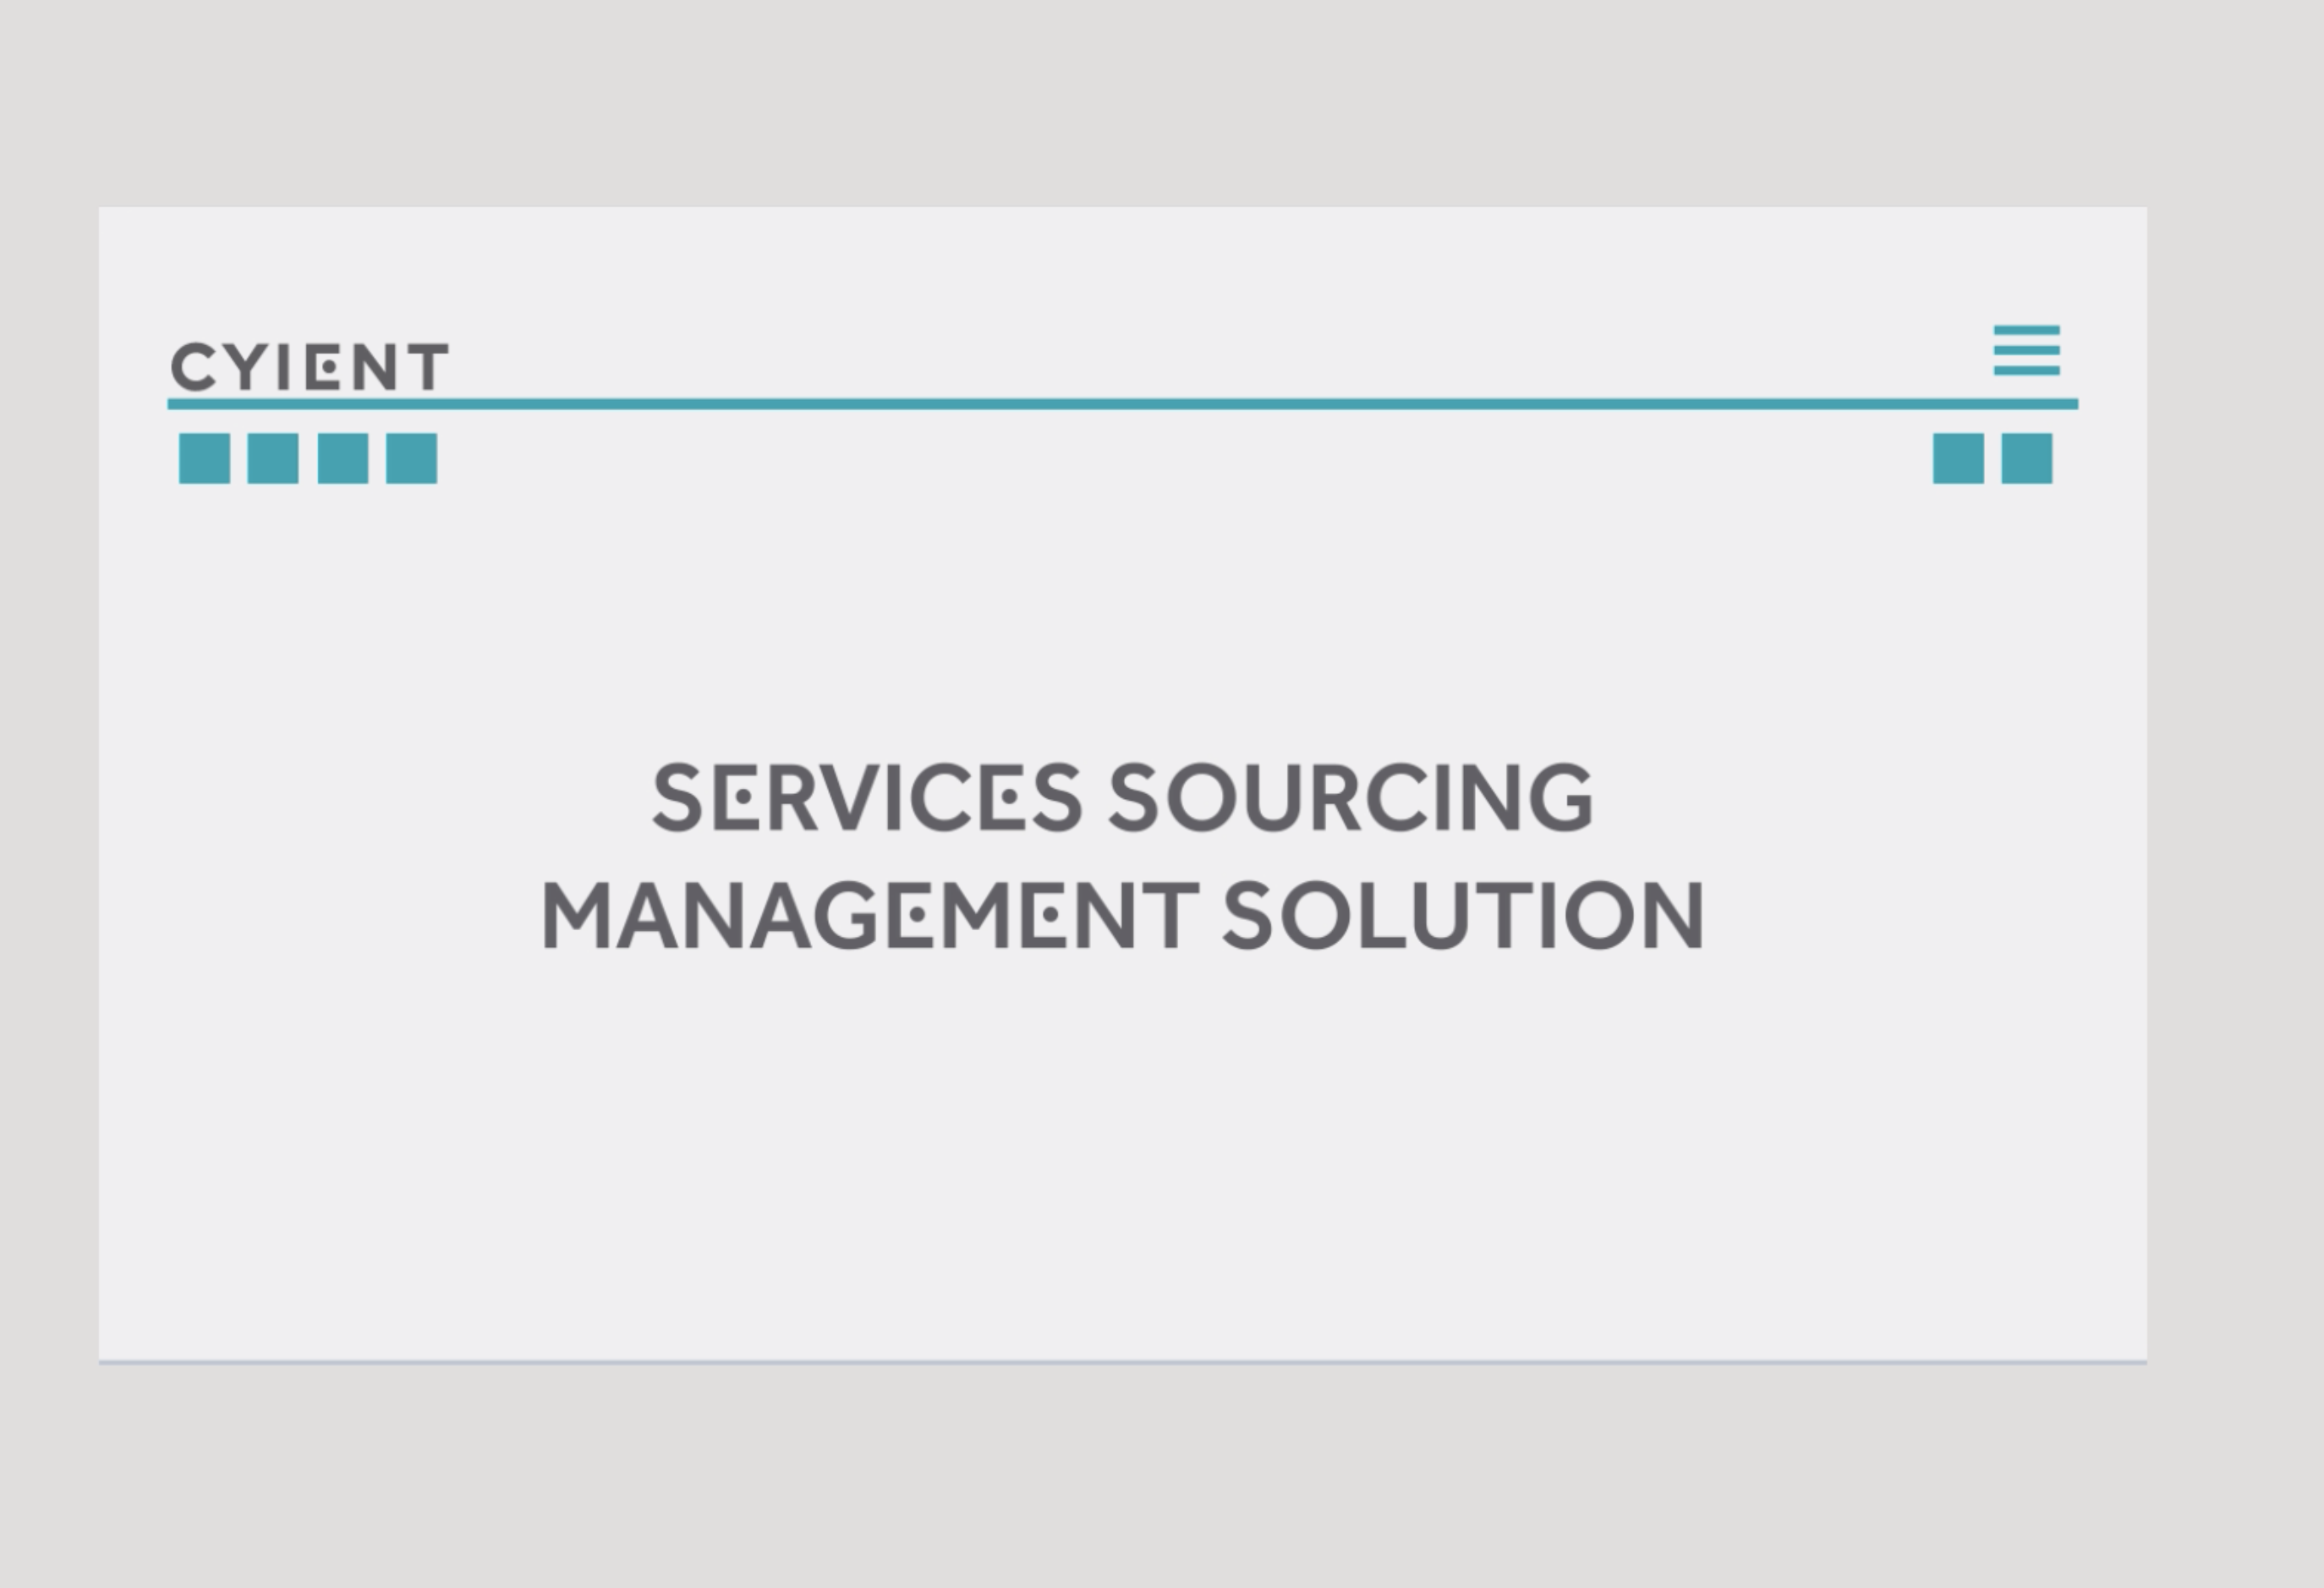 Services Sourcing Management